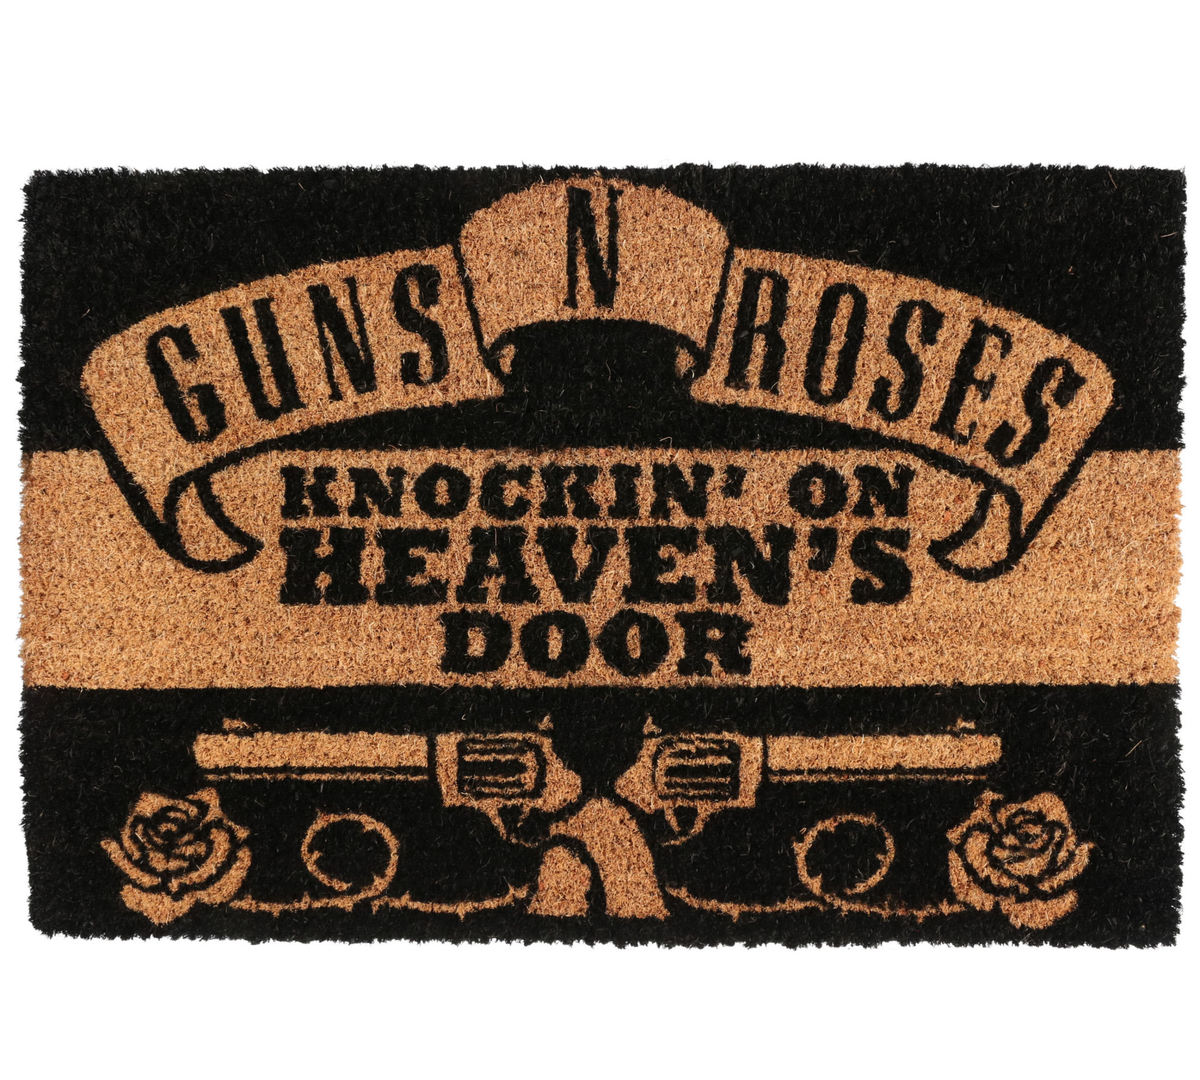 rohožka Guns N Roses - (Knockin On Heavens Door) - PYRAMID POSTERS - GP85164